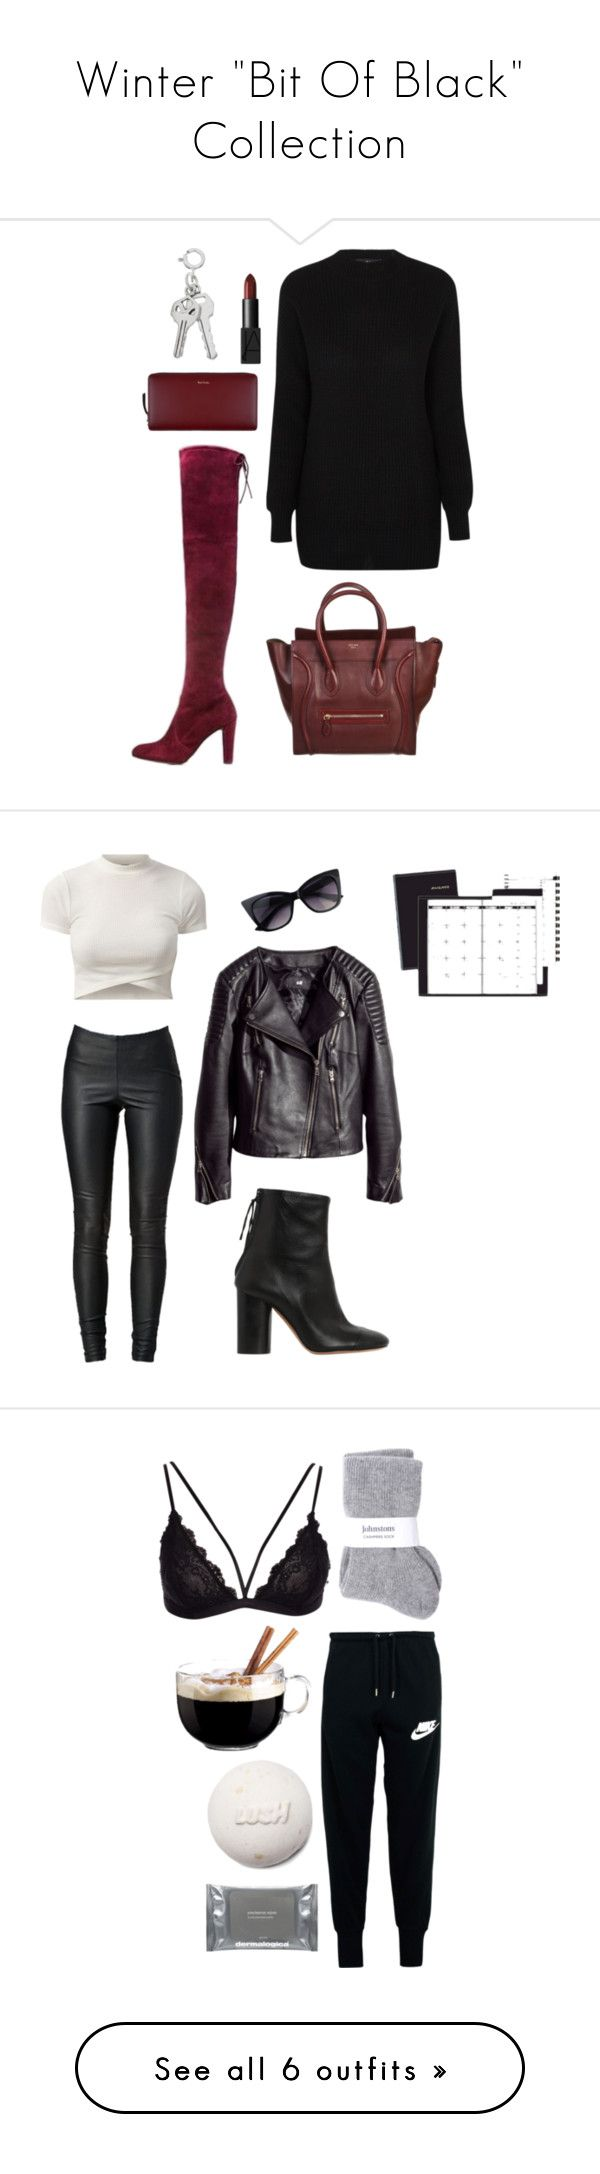 """Winter """"Bit Of Black"""" Collection by shannondoody on Polyvore featuring NARS Cosmetics, CÉLINE, Paul Smith, ACCO, H&M, VILA, Isabel Marant, NIKE, Luminarc and Johnstons"""